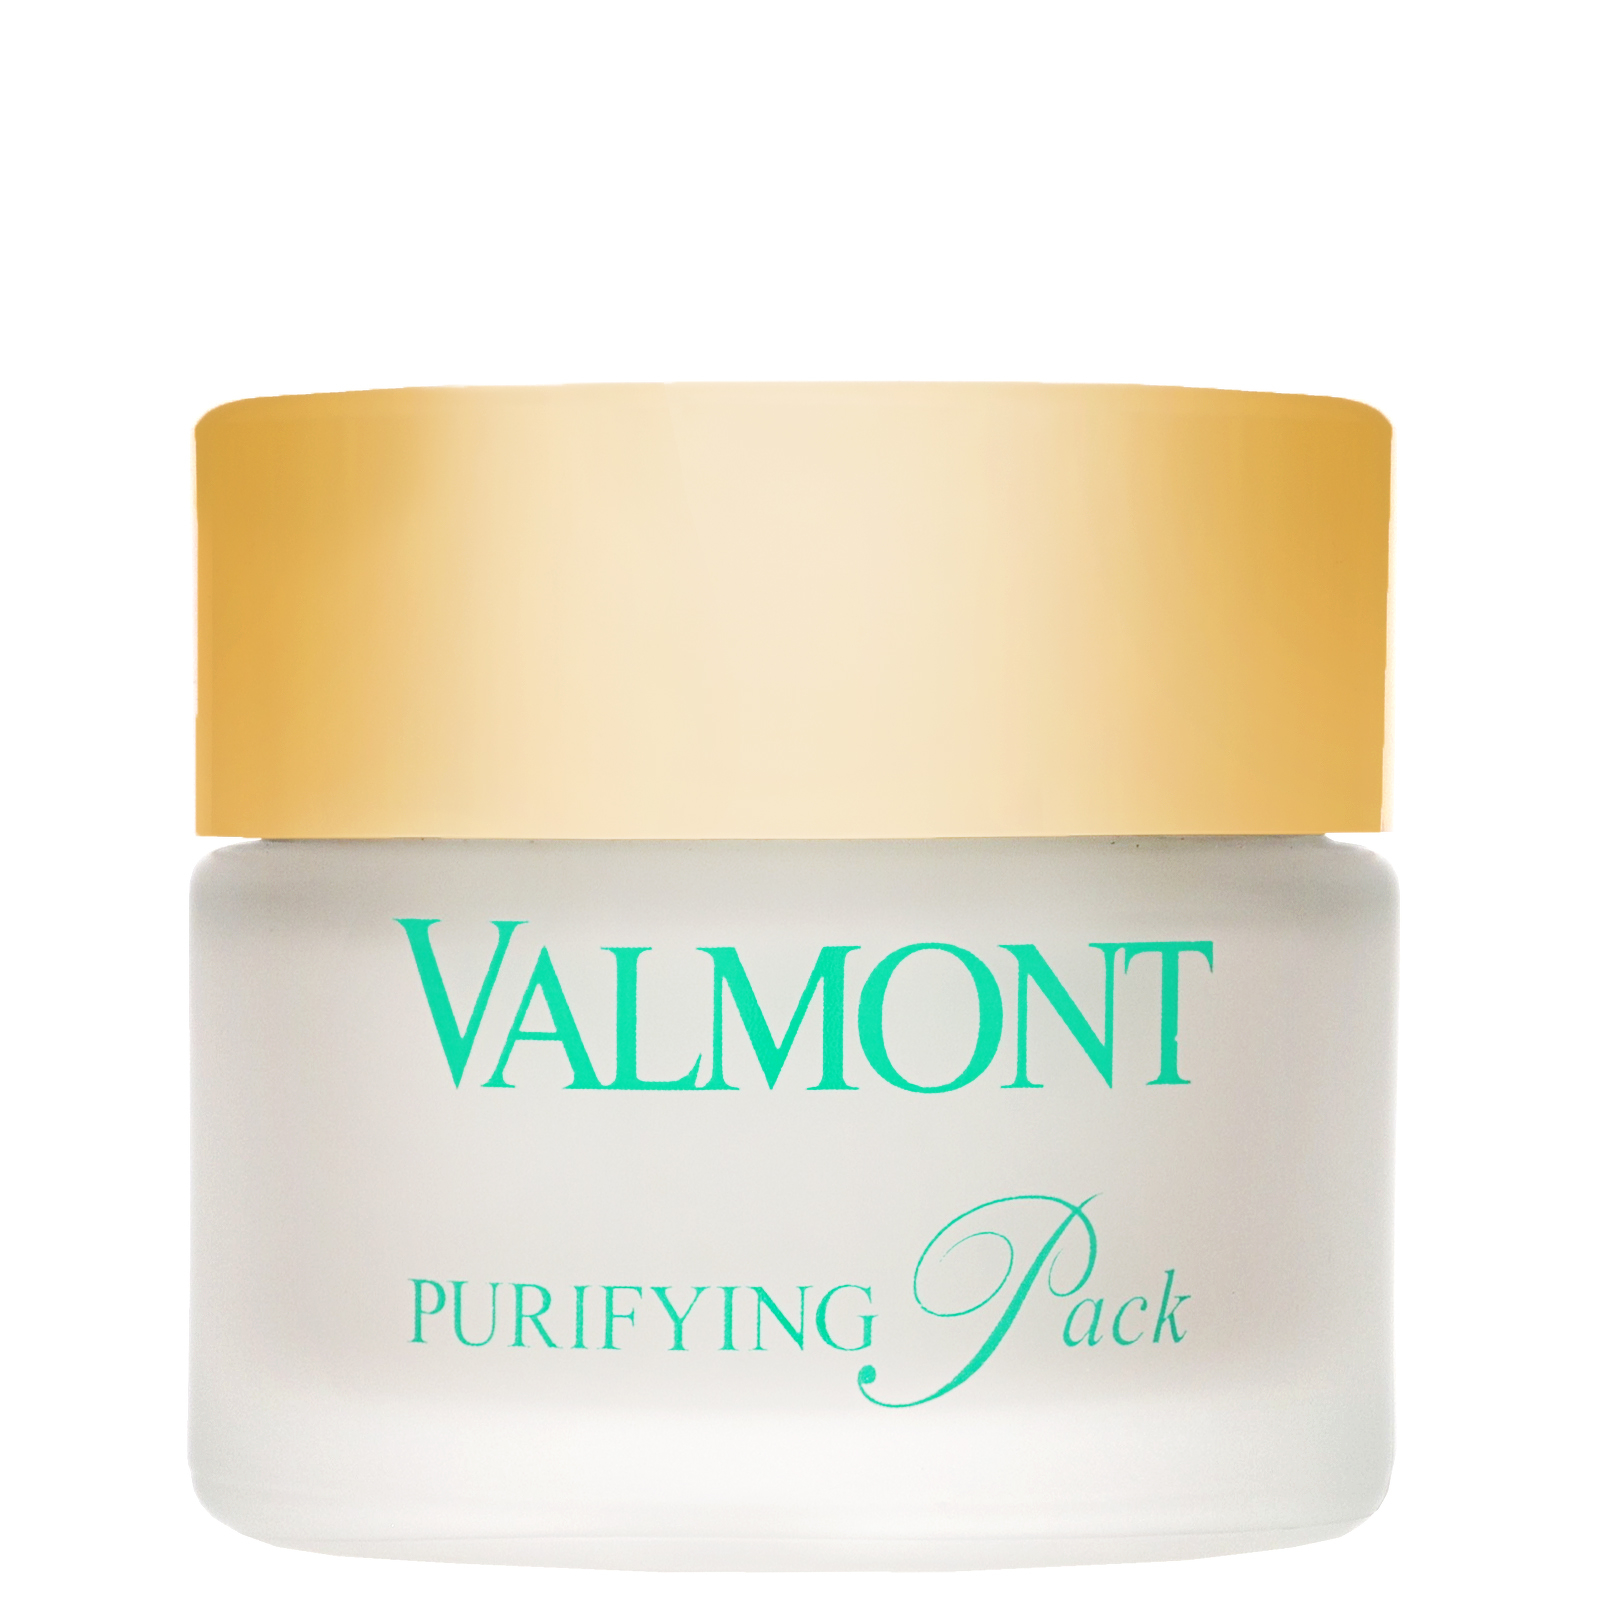 Valmont Spirit of Purity Purifying Pack 50ml